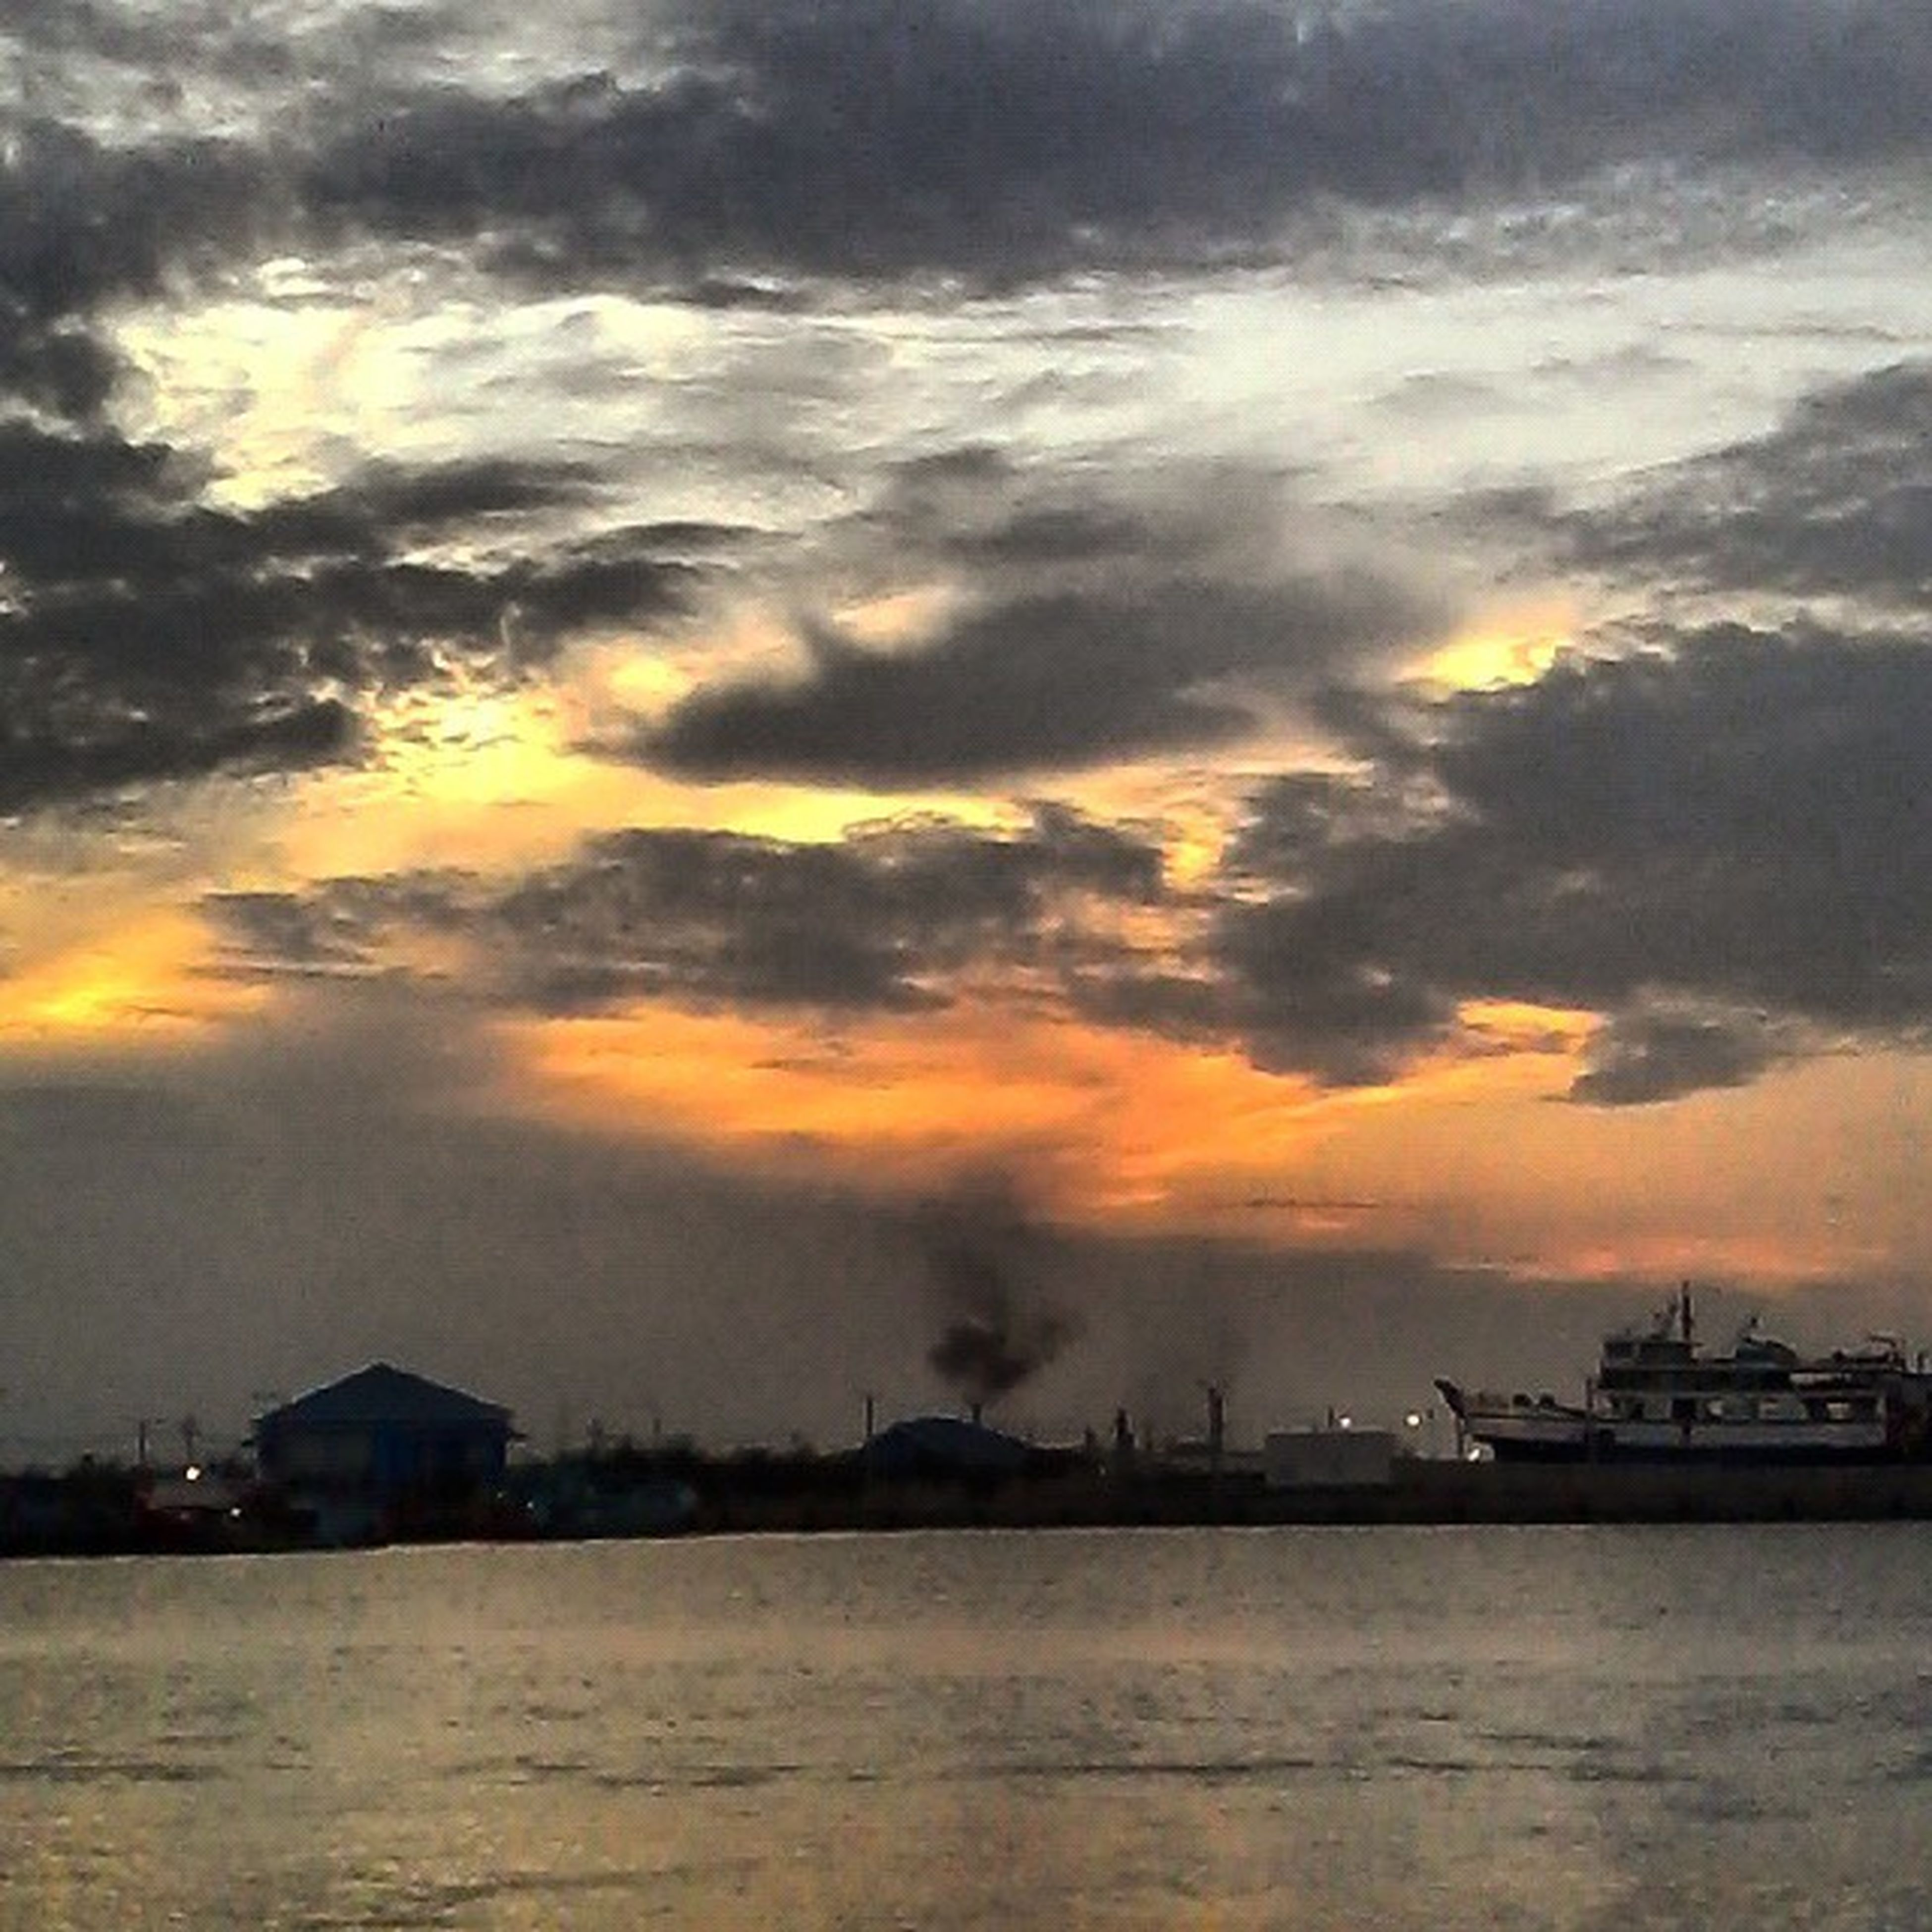 sunset, water, sky, waterfront, sea, cloud - sky, scenics, tranquil scene, beauty in nature, tranquility, cloudy, cloud, nature, nautical vessel, orange color, idyllic, dramatic sky, transportation, silhouette, weather